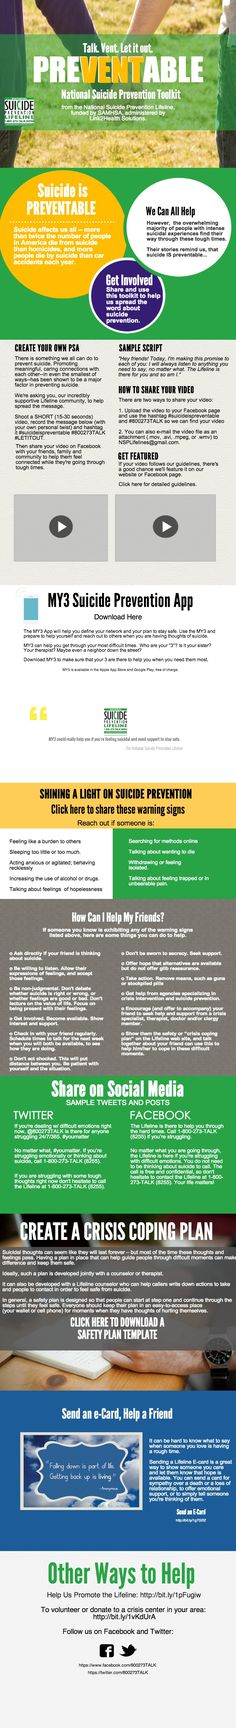 National Suicide Prevention Lifeline Toolkit | Piktochart Infographic Editor